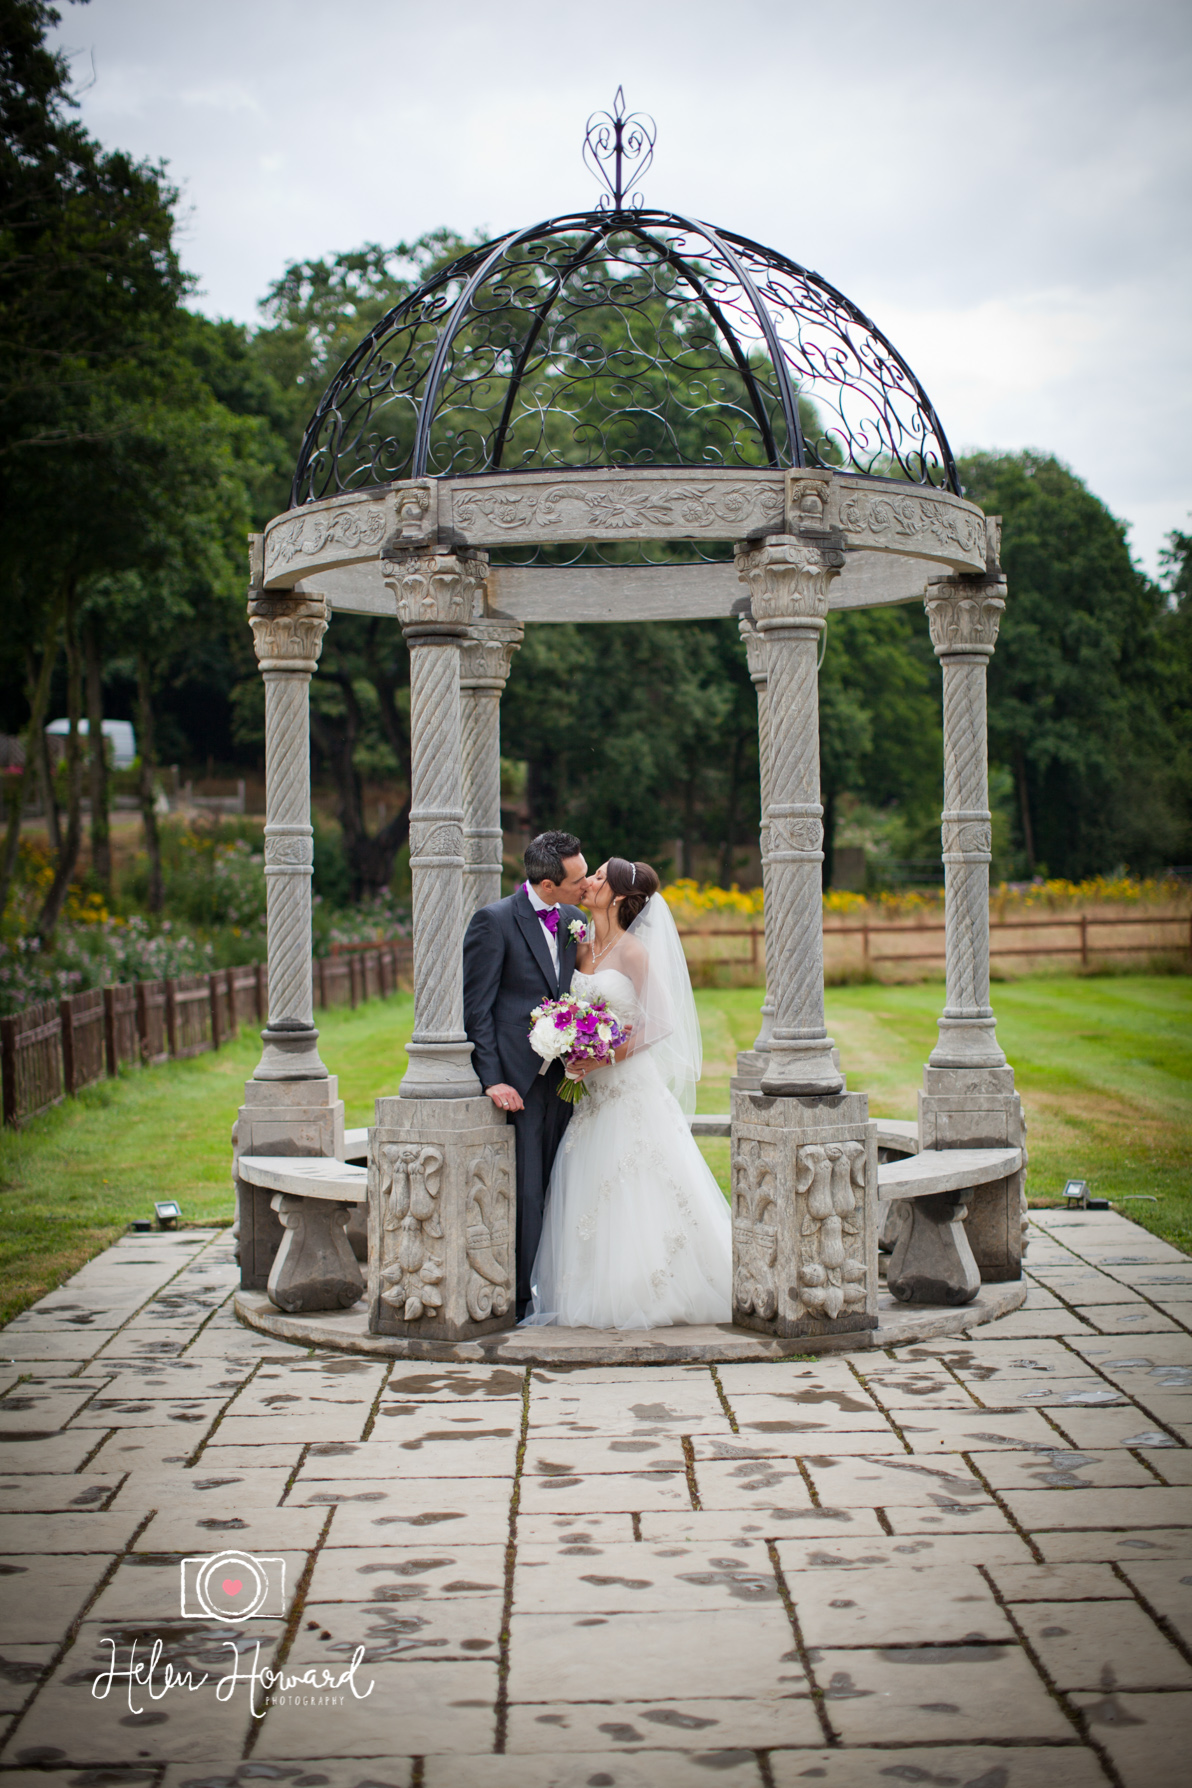 Bride and Groom at the Old School House in Weeford